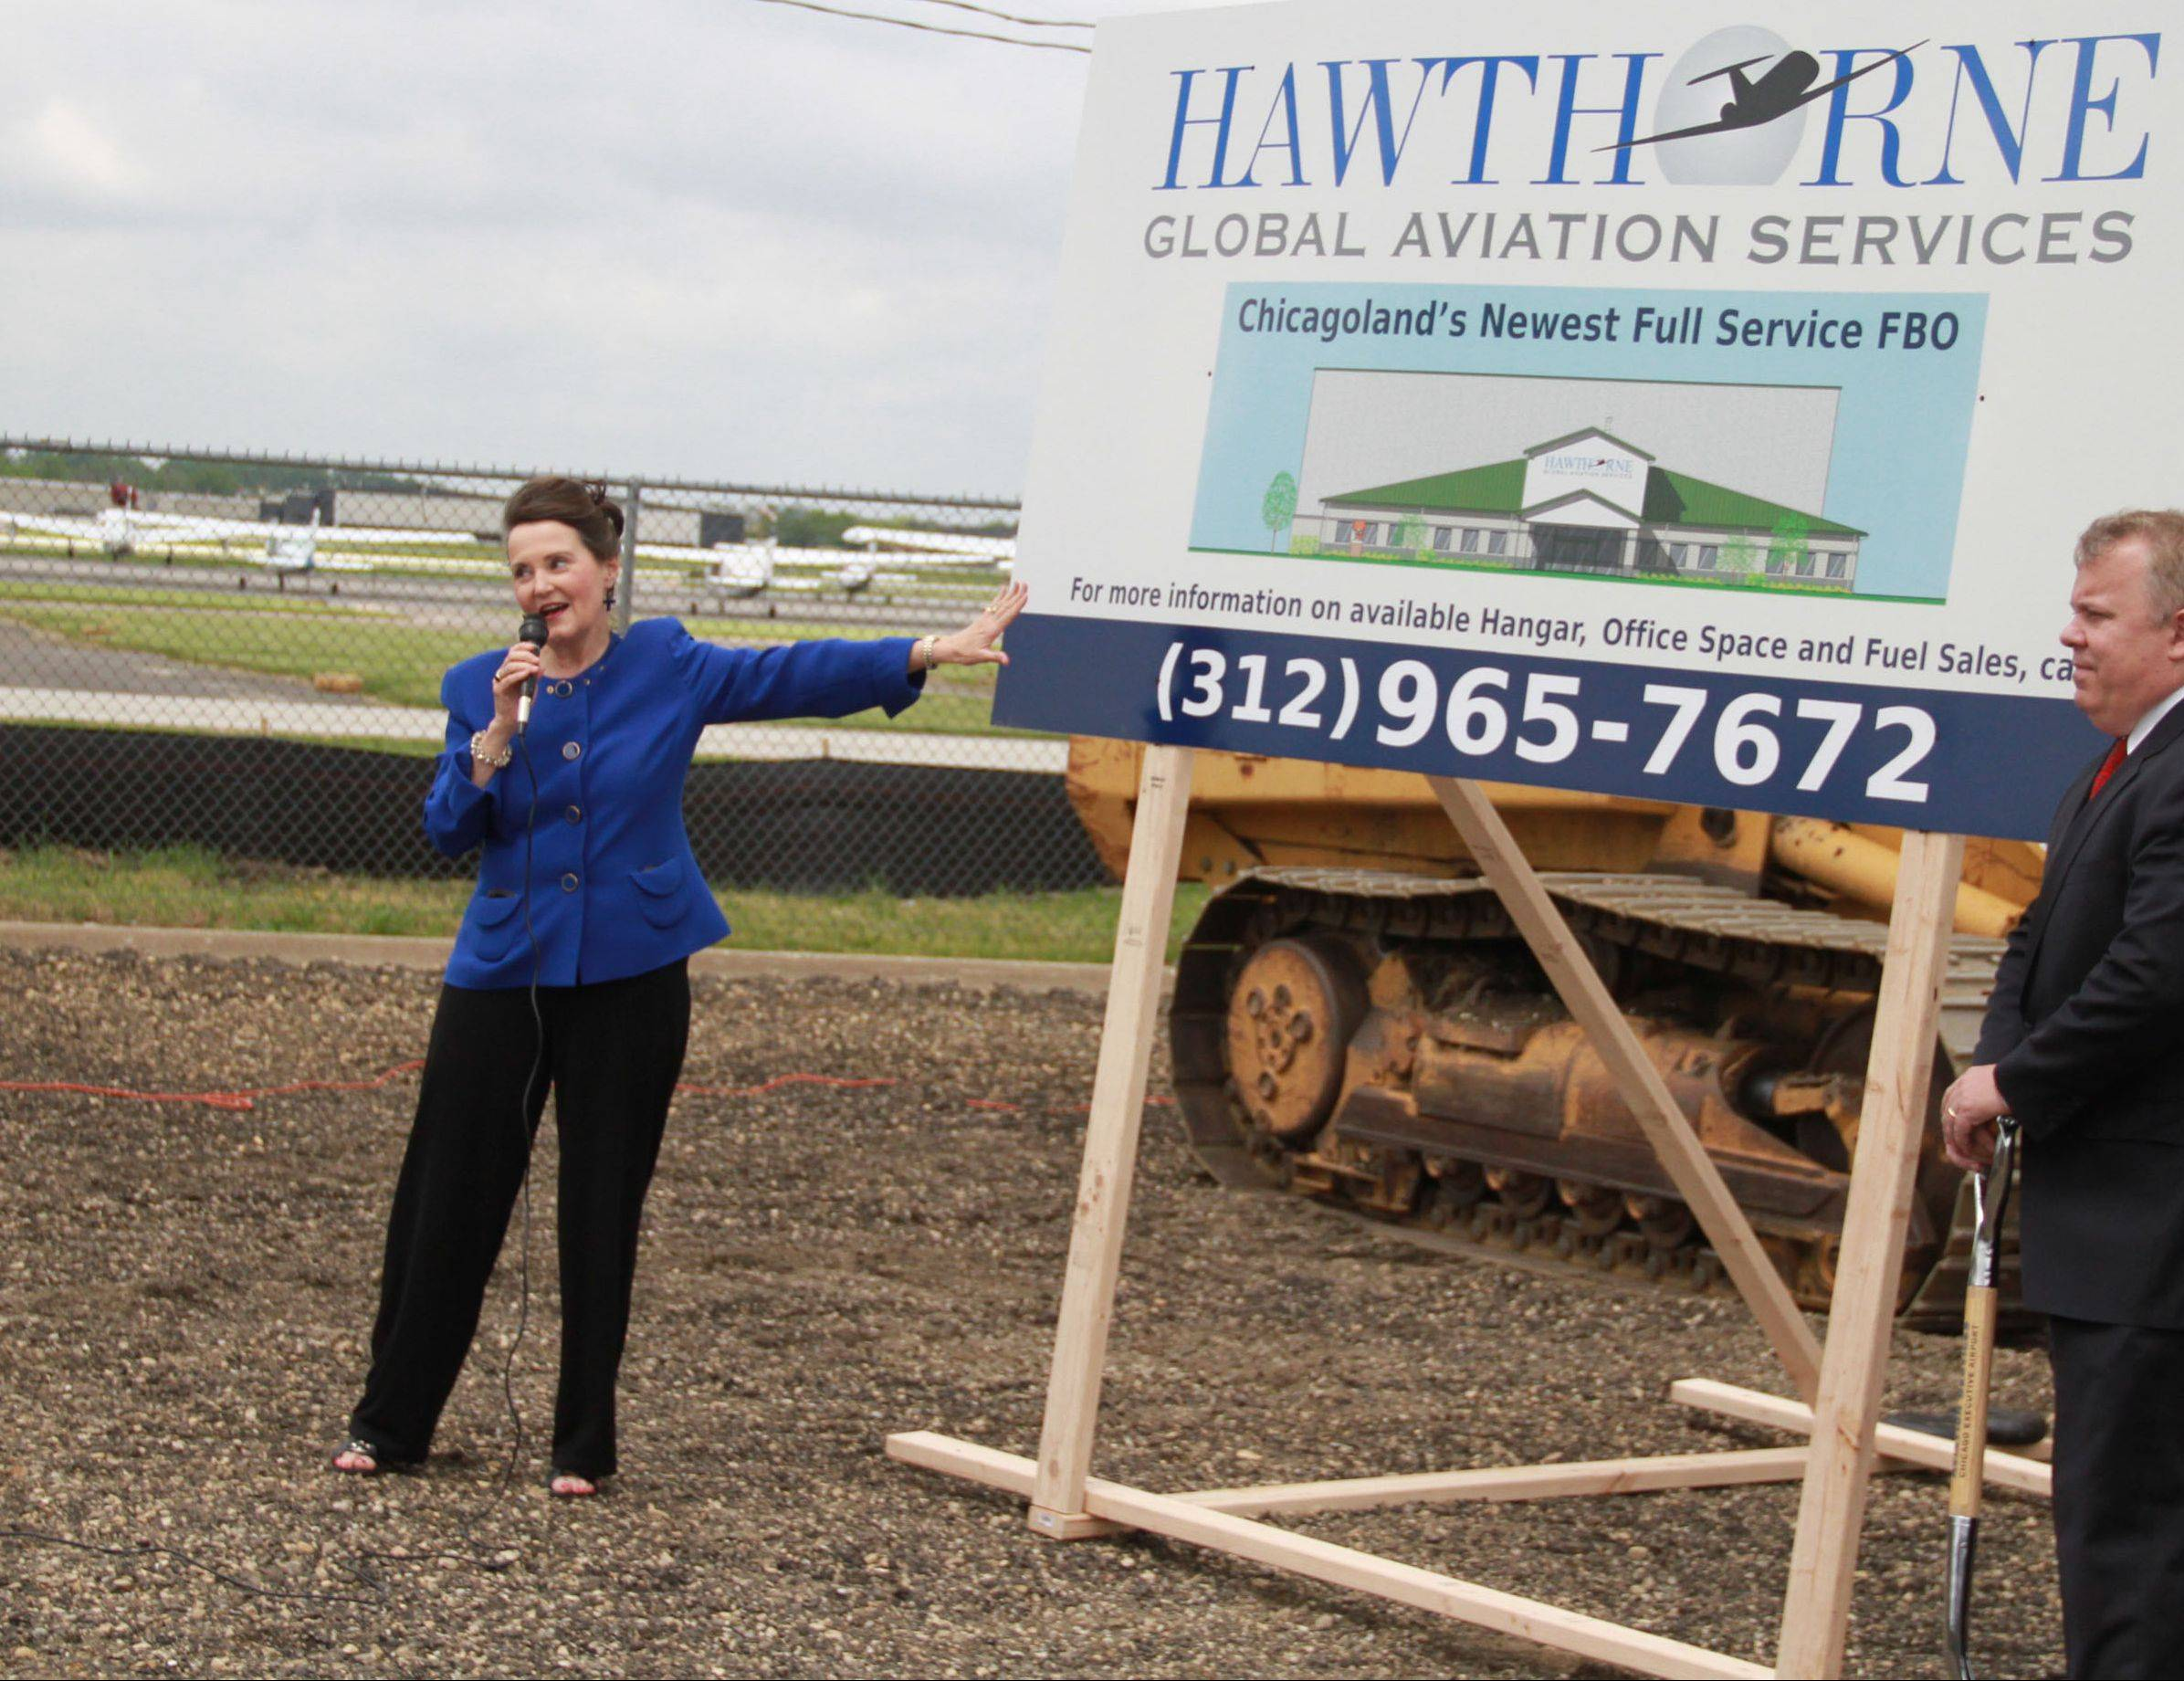 Susan Shea, director of the Illinois Division of Aeronautics, speaks during a groundbreaking for a new facility by Hawthorne Global Aviation Service at Chicago Executive Airport.